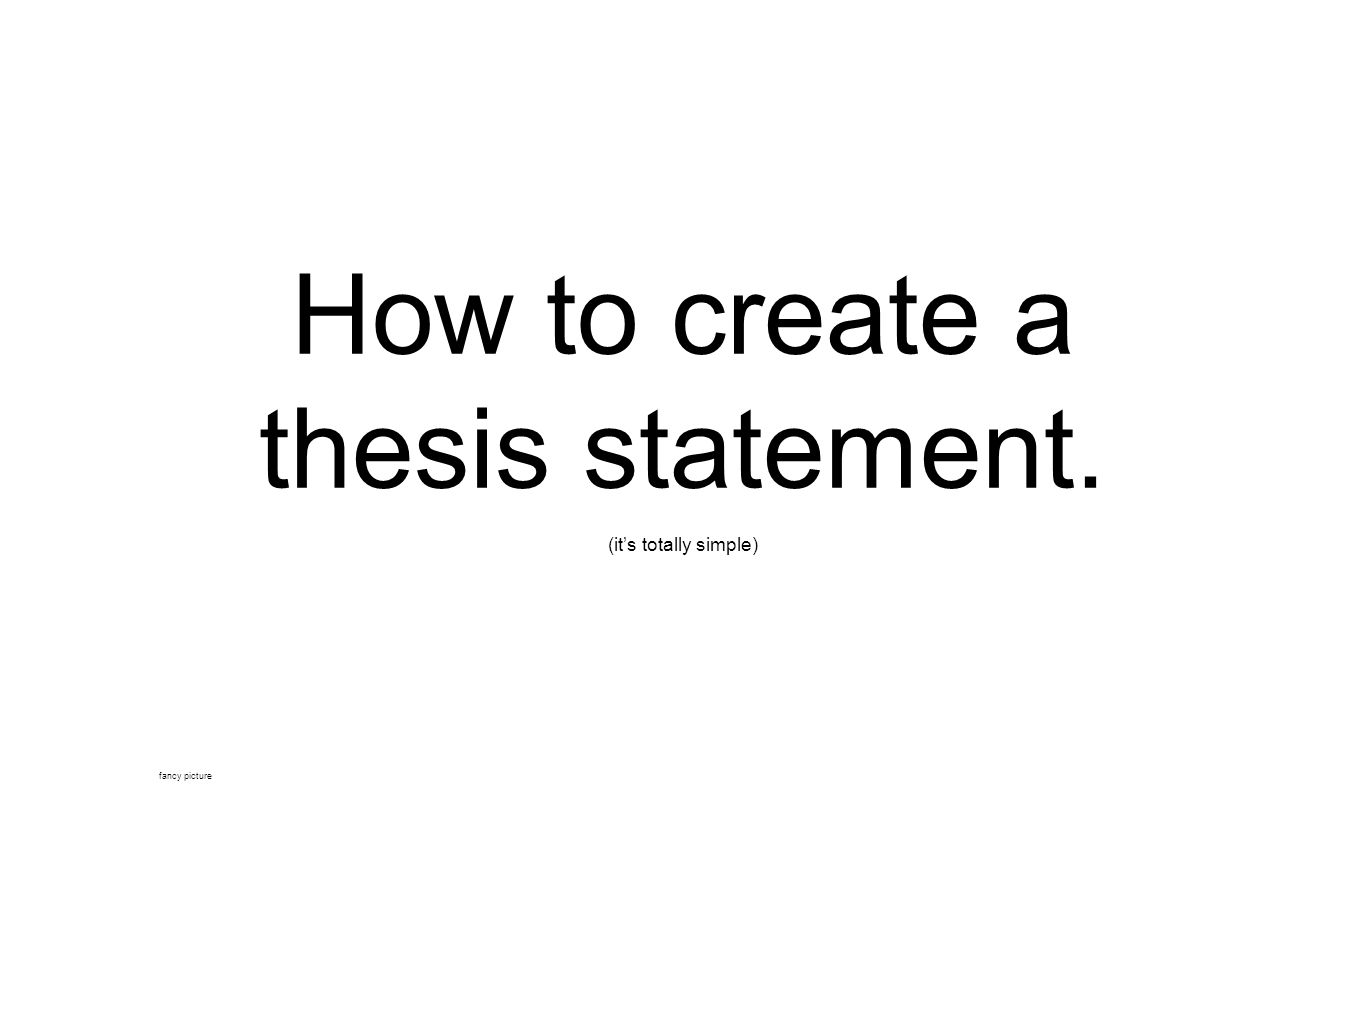 best thesis statement ever Write an introductory paragraph using the following thesis statement remember to open with a general statement and work your way back to the thesis.